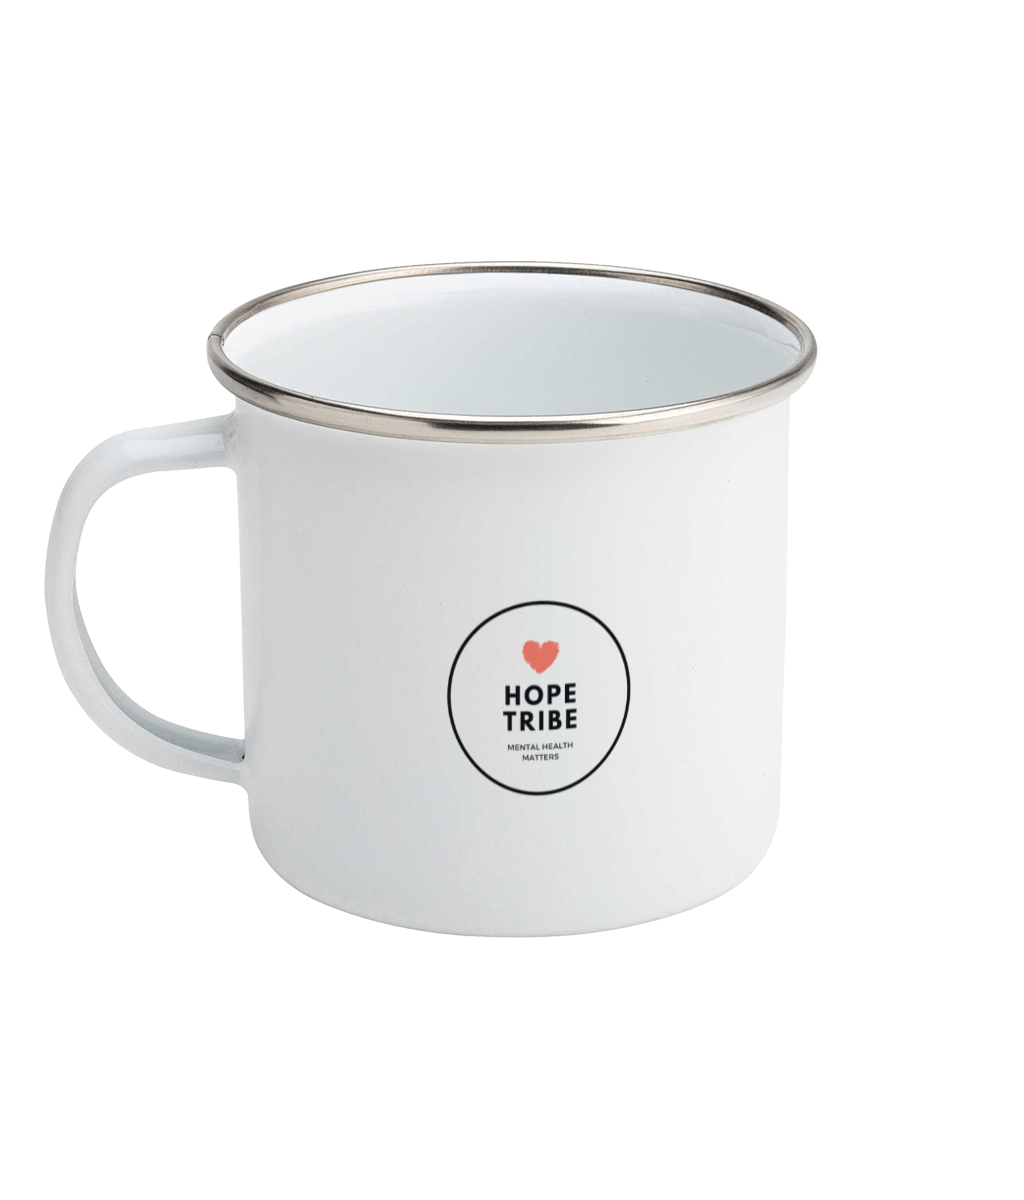 Mental Health Warrior Enamel Mug - Hope Tribe Mental Health